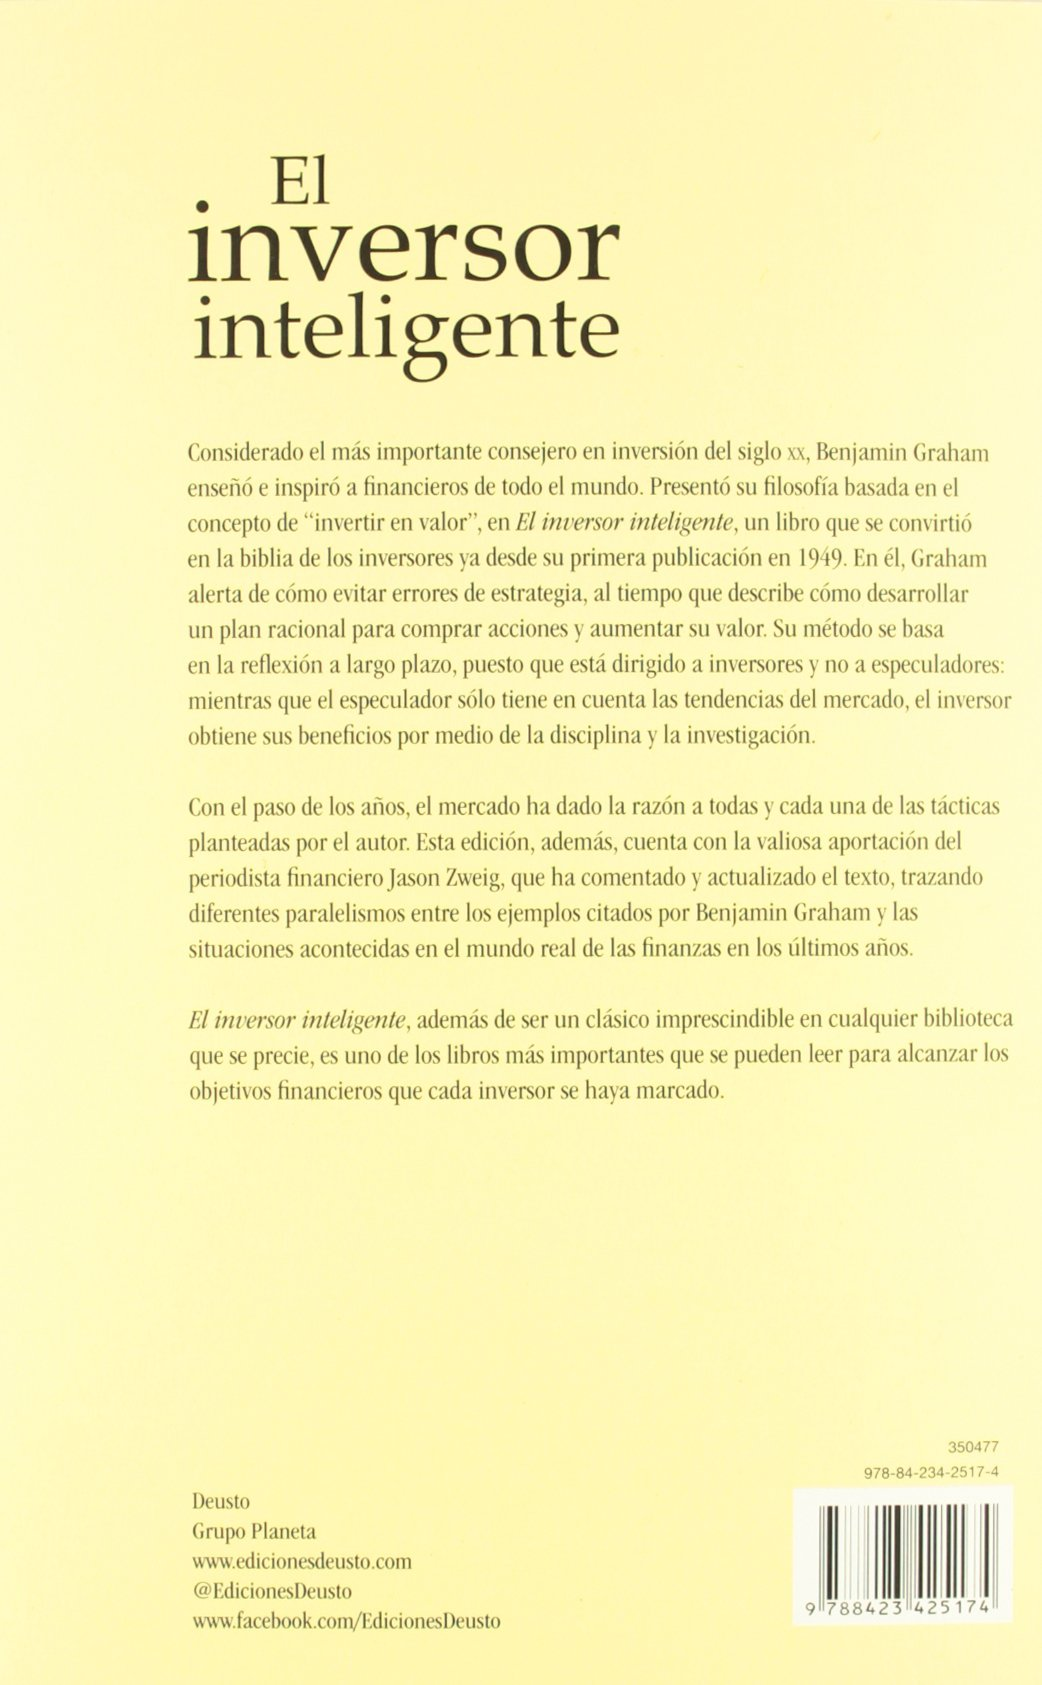 El inversor inteligente: Benjamin Graham: 9788423425174: Amazon.com: Books